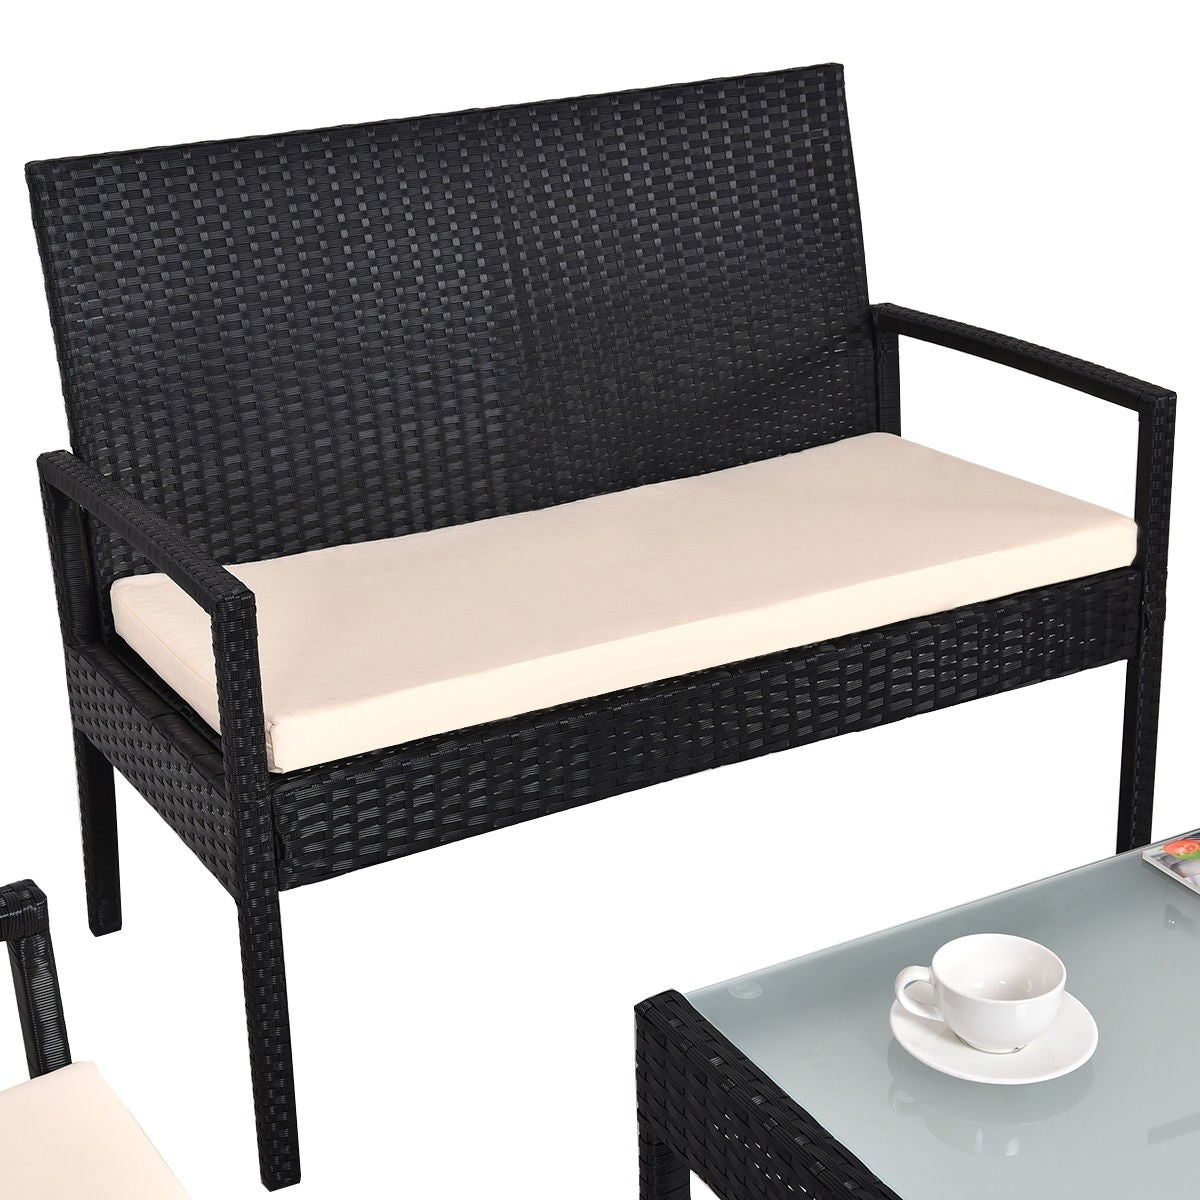 Shop Costway 4 PCS Outdoor Patio Furniture Set Table Chair Sofa Cushioned Seat Garden - On Sale - Free Shipping Today - Overstock.com - 16088556  sc 1 st  Overstock.com & Shop Costway 4 PCS Outdoor Patio Furniture Set Table Chair Sofa ...